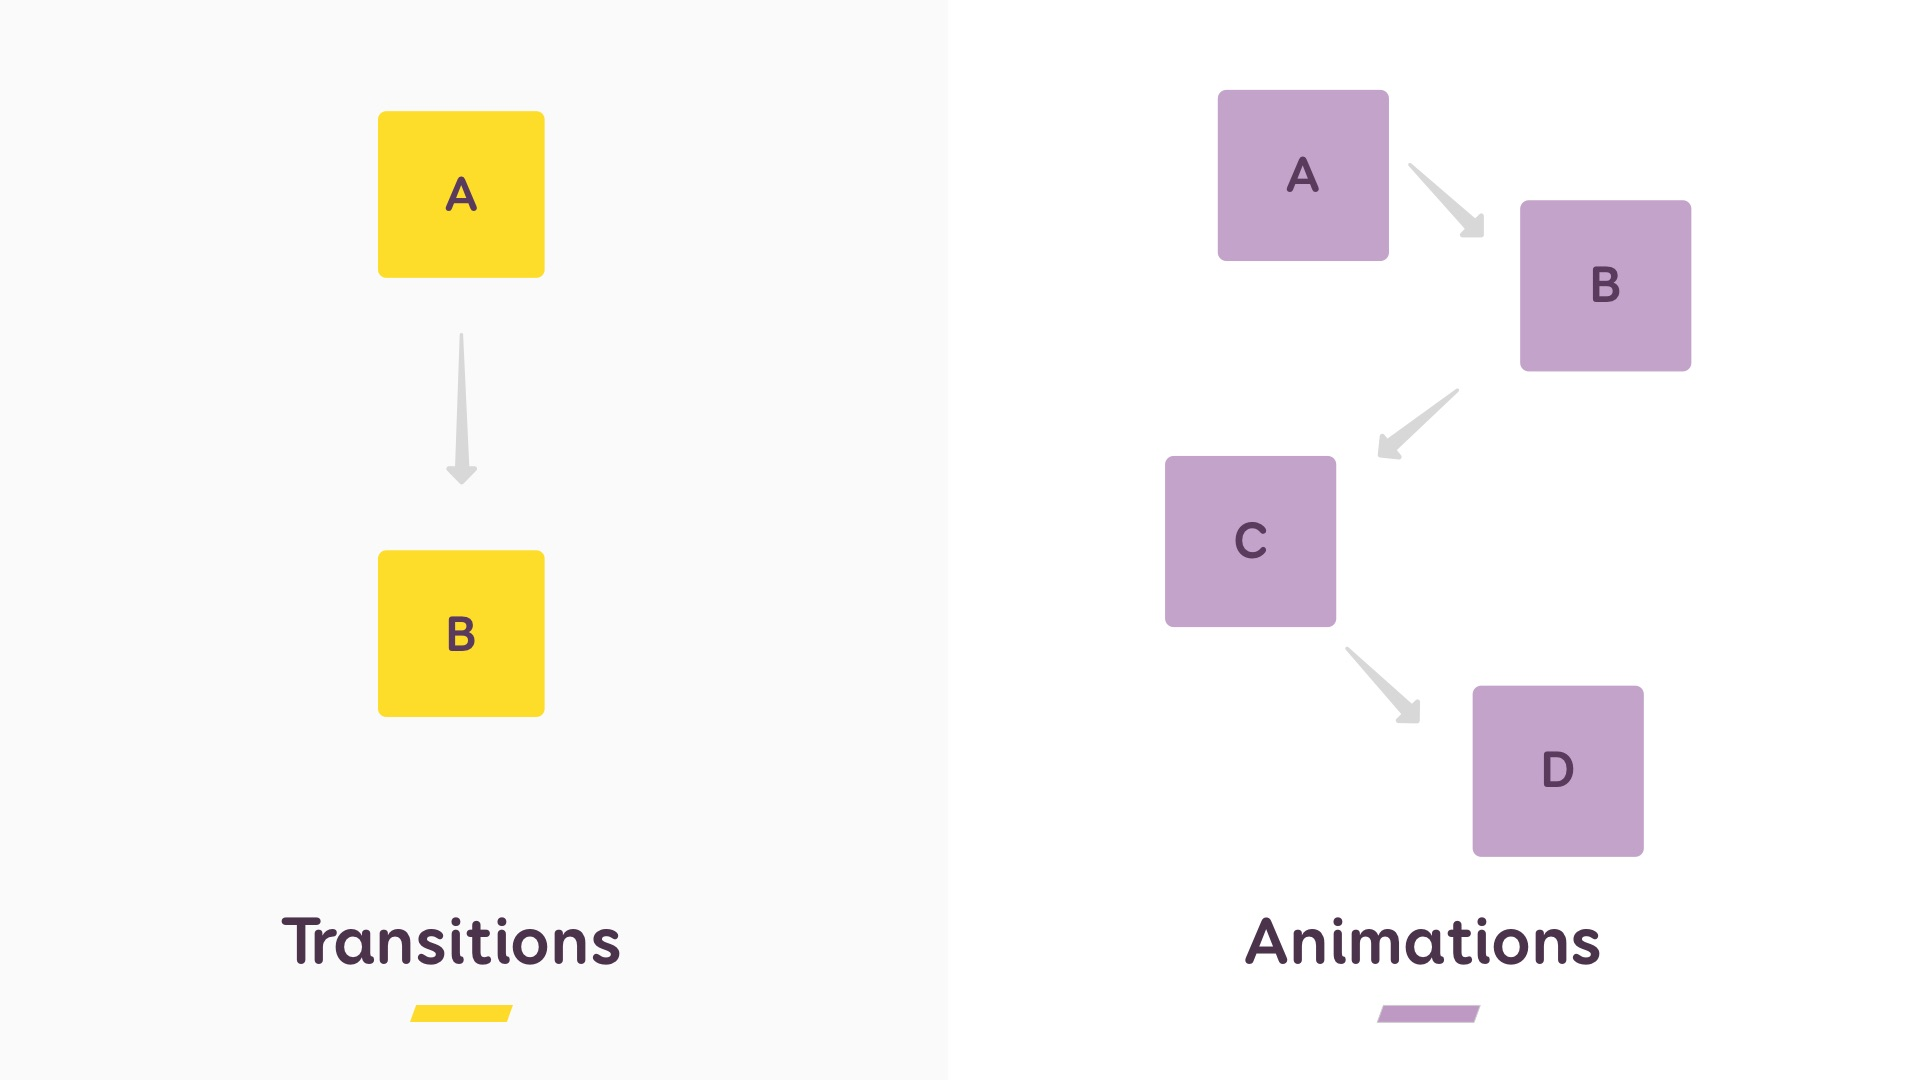 A graph showing 2 stages for transition and 4 stages for animations